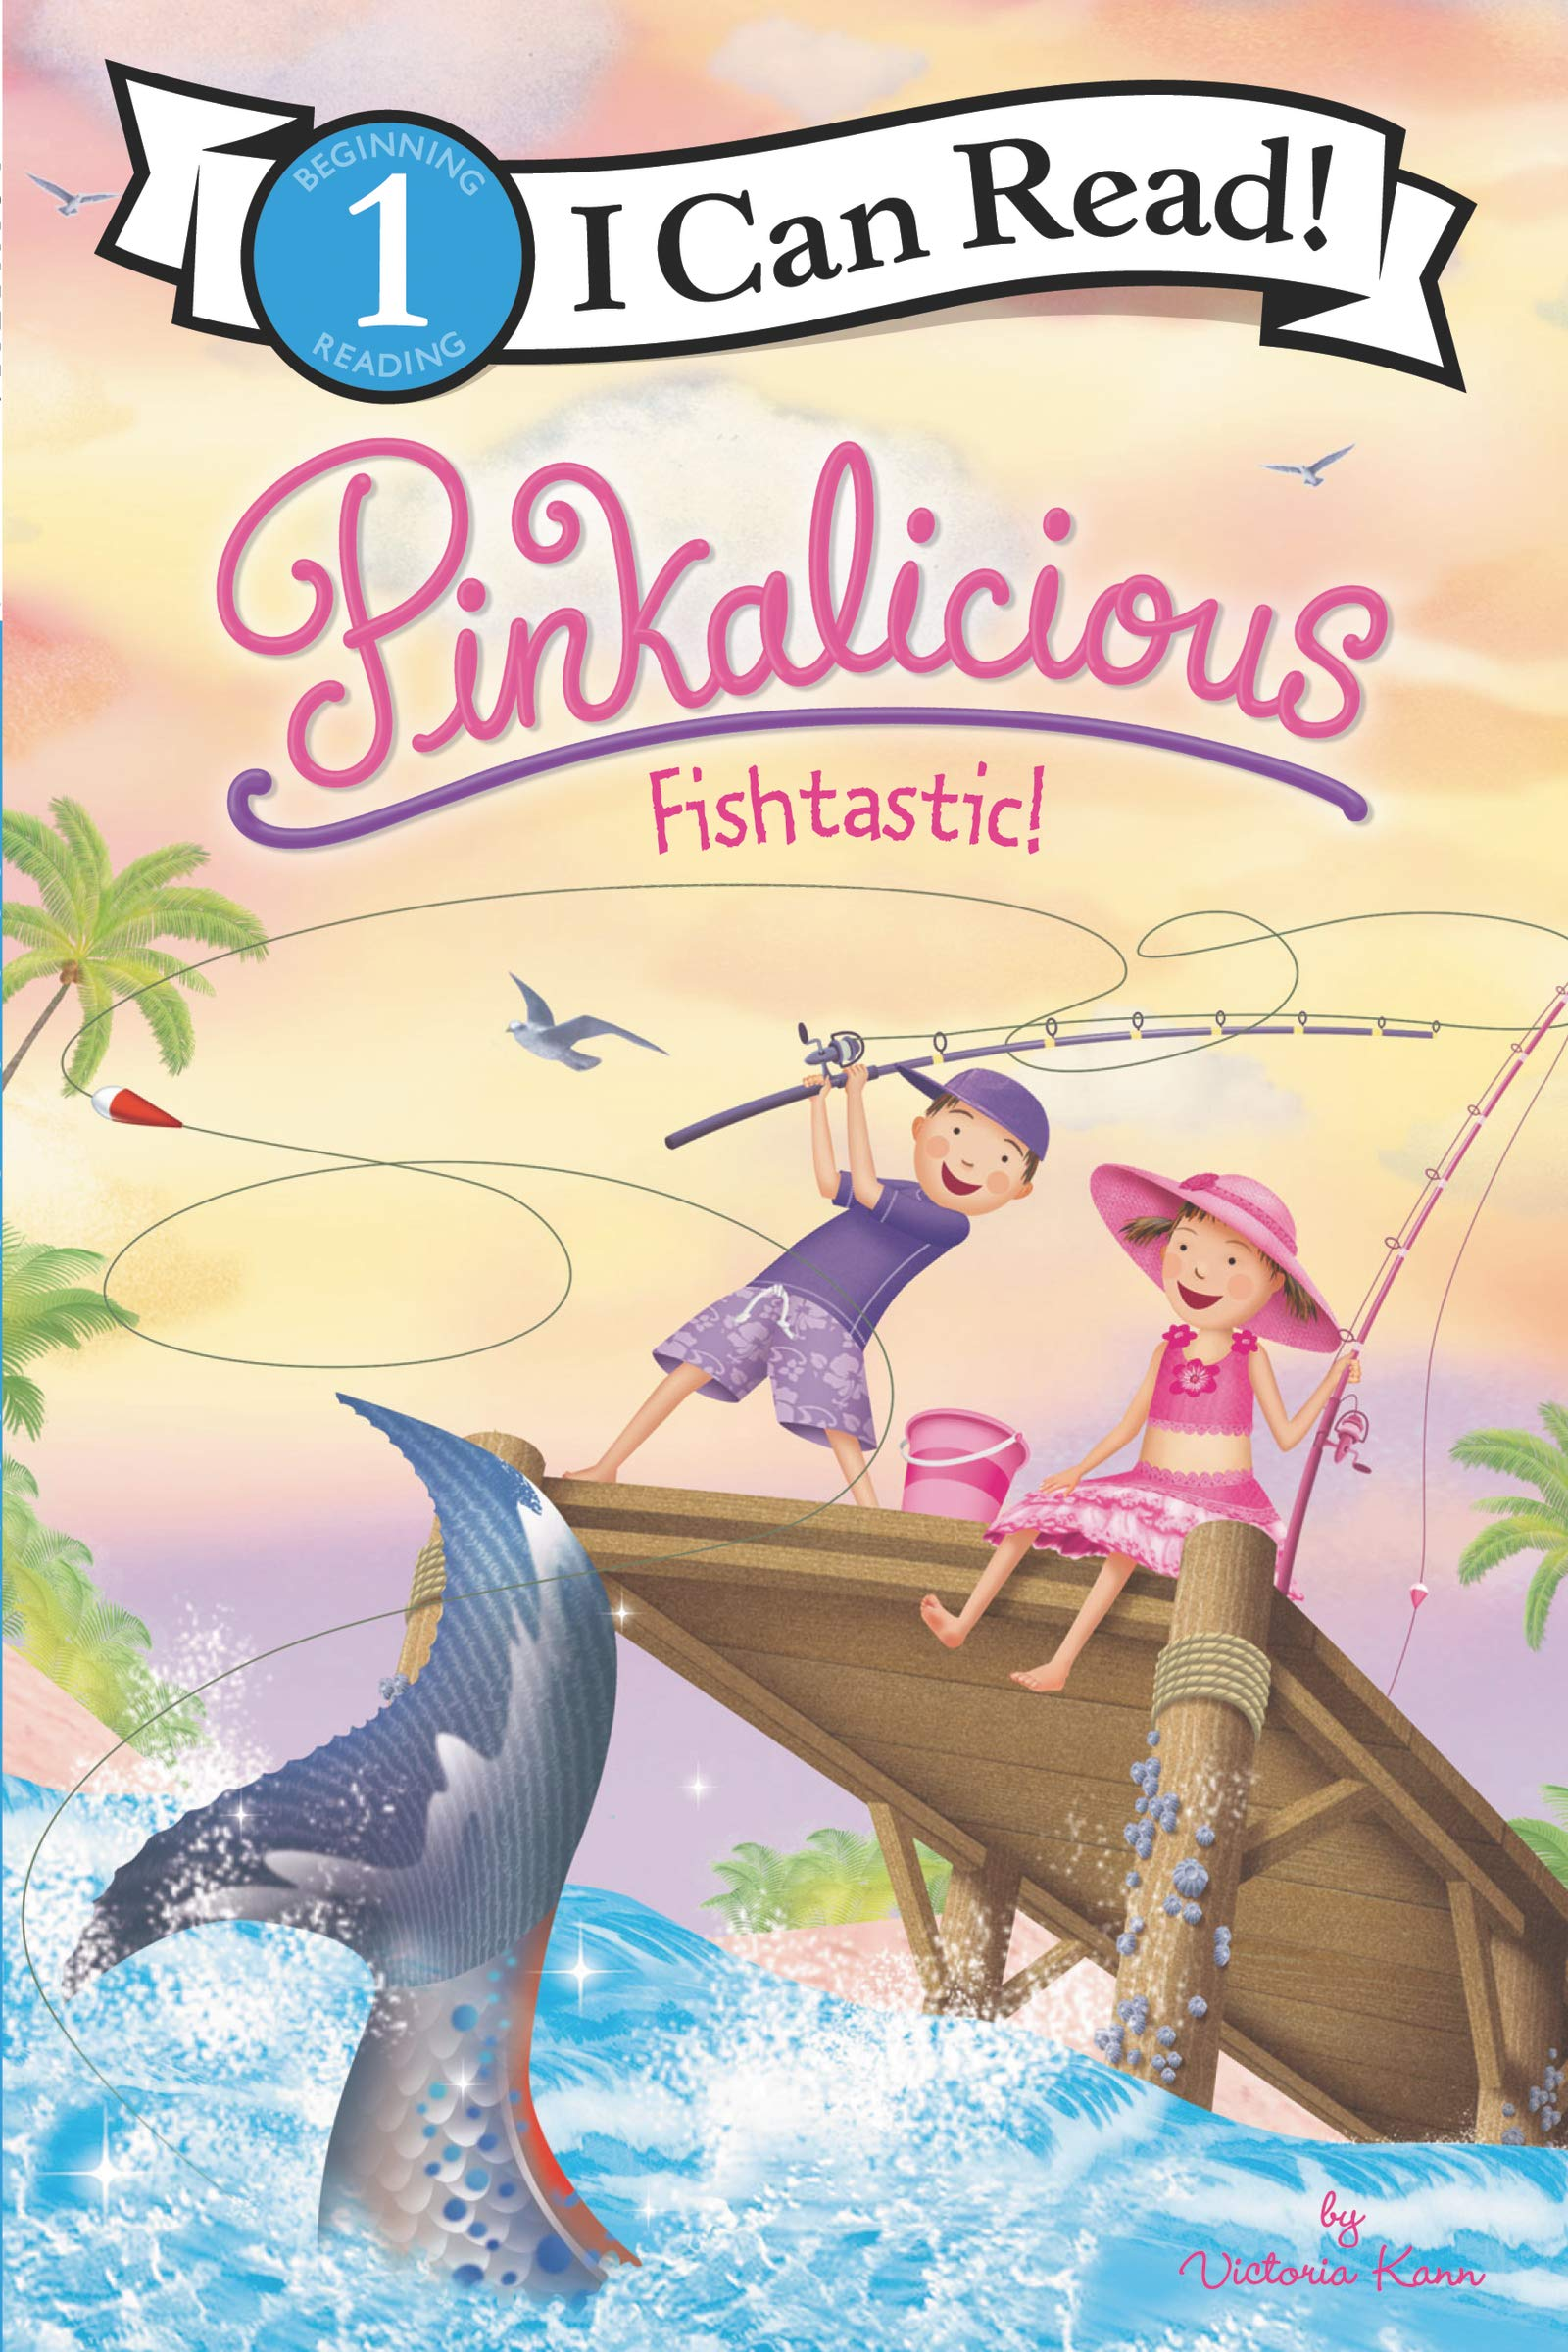 Pinkalicious: Fishtastic! (I Can Read! Level 1: Beginning Reading)